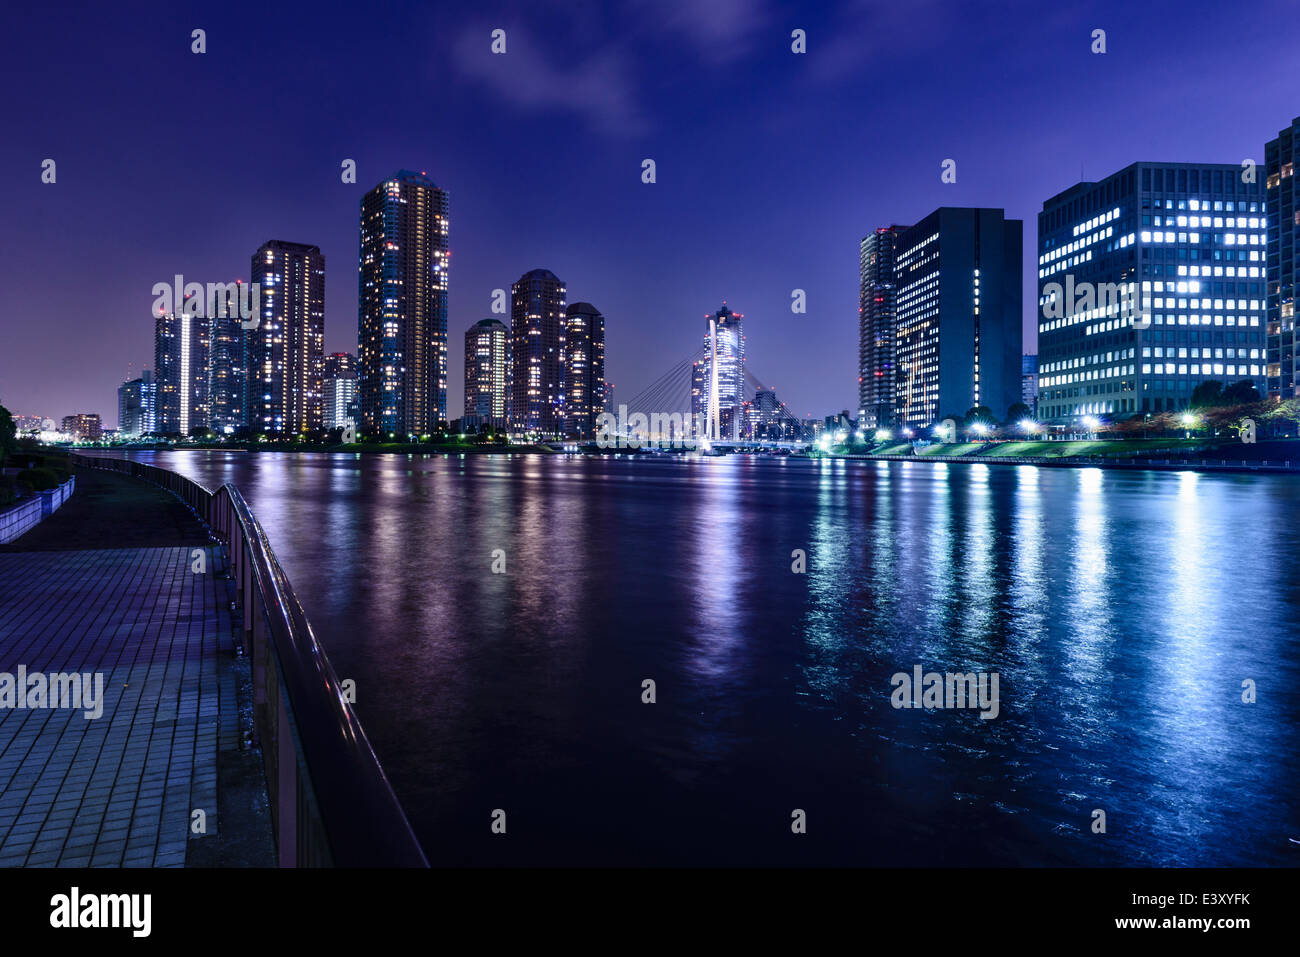 Silhouette of Tokyo skyline lit up at night, Tokyo, Japan - Stock Image